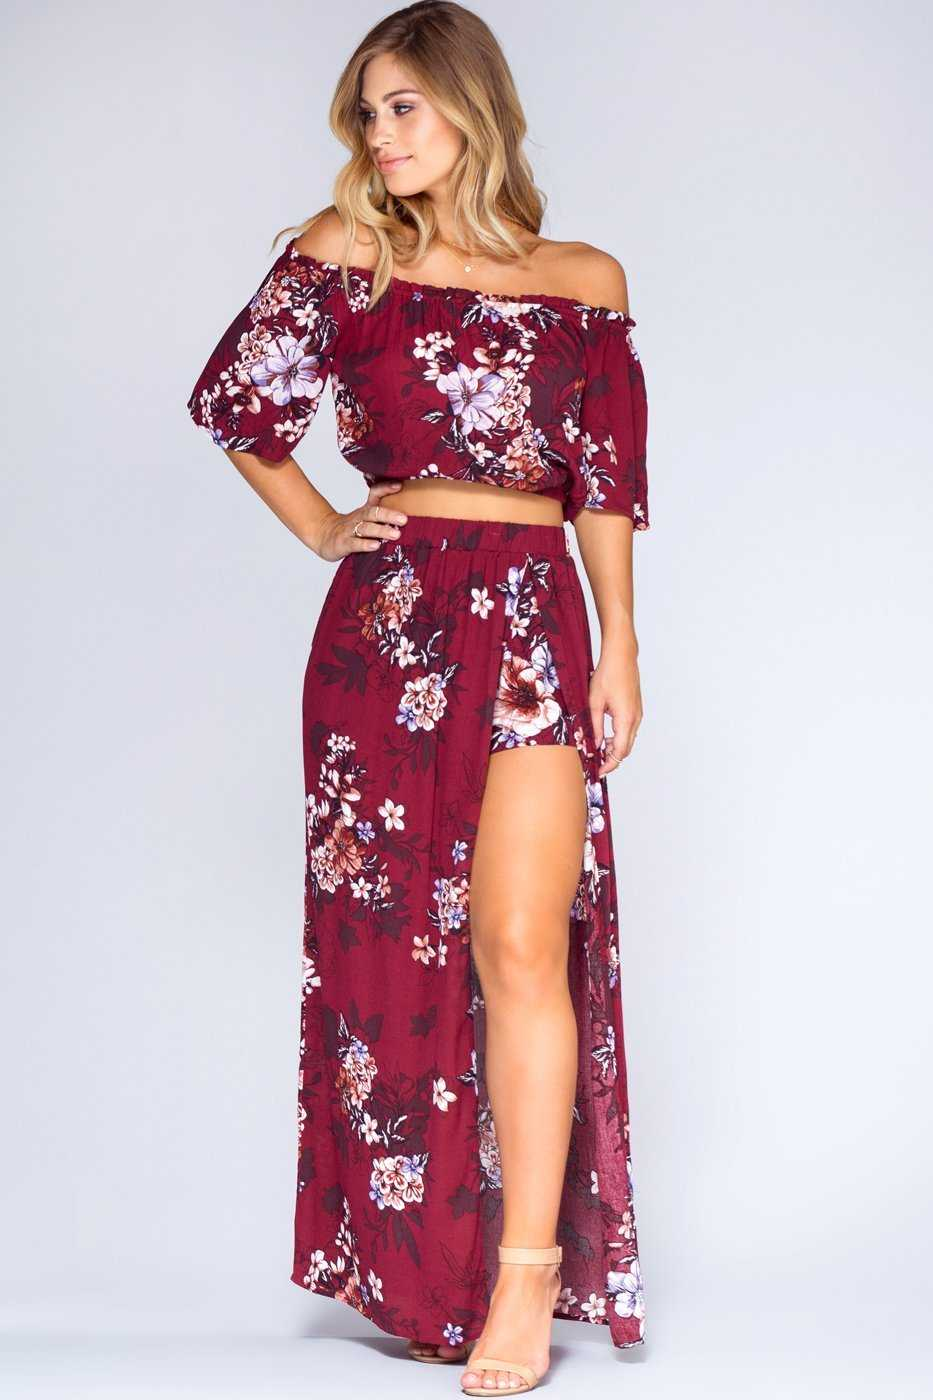 Skirts - Sunset Dreams Maxi Skirt - Burgundy